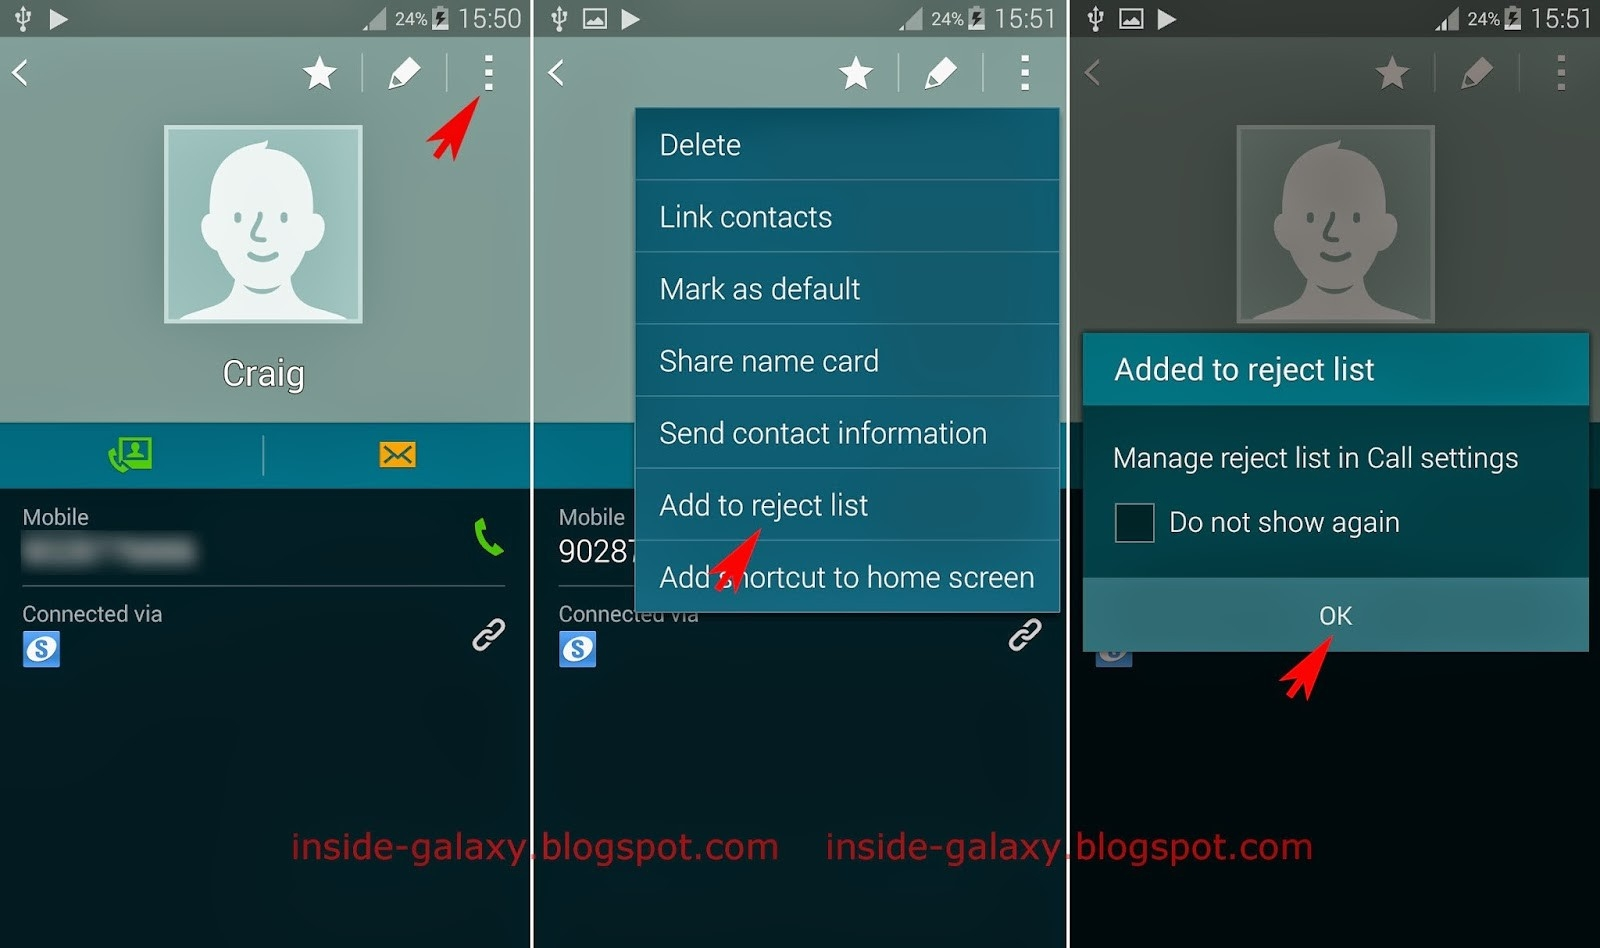 Samsung Galaxy S5: How To Add Or Remove Contact From The Reject List in Call Reject List 37040